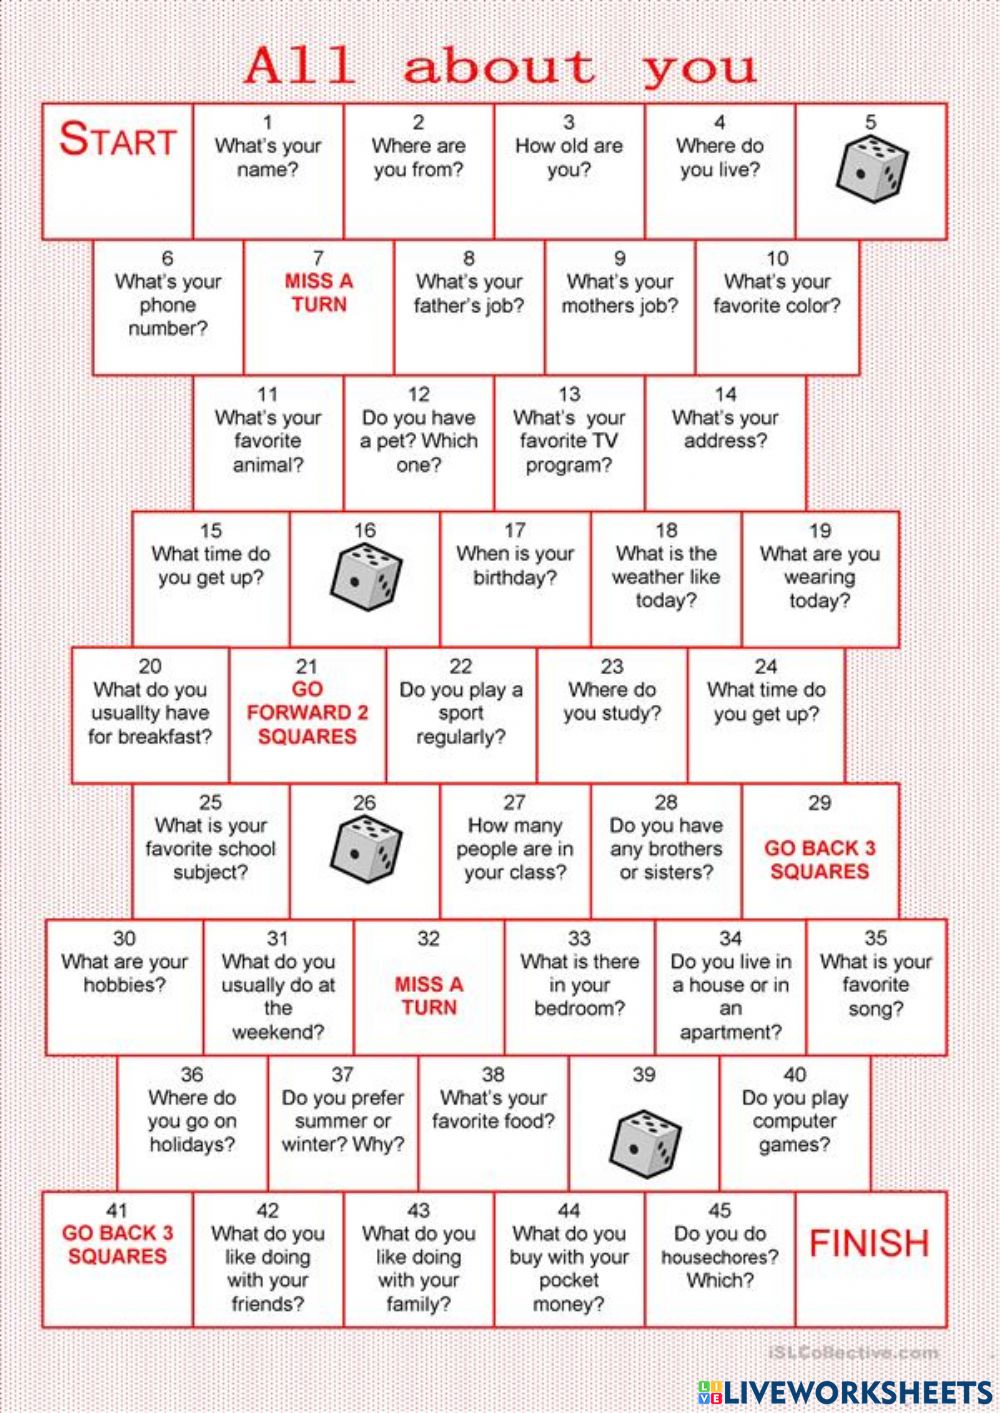 All about you boardgame worksheet